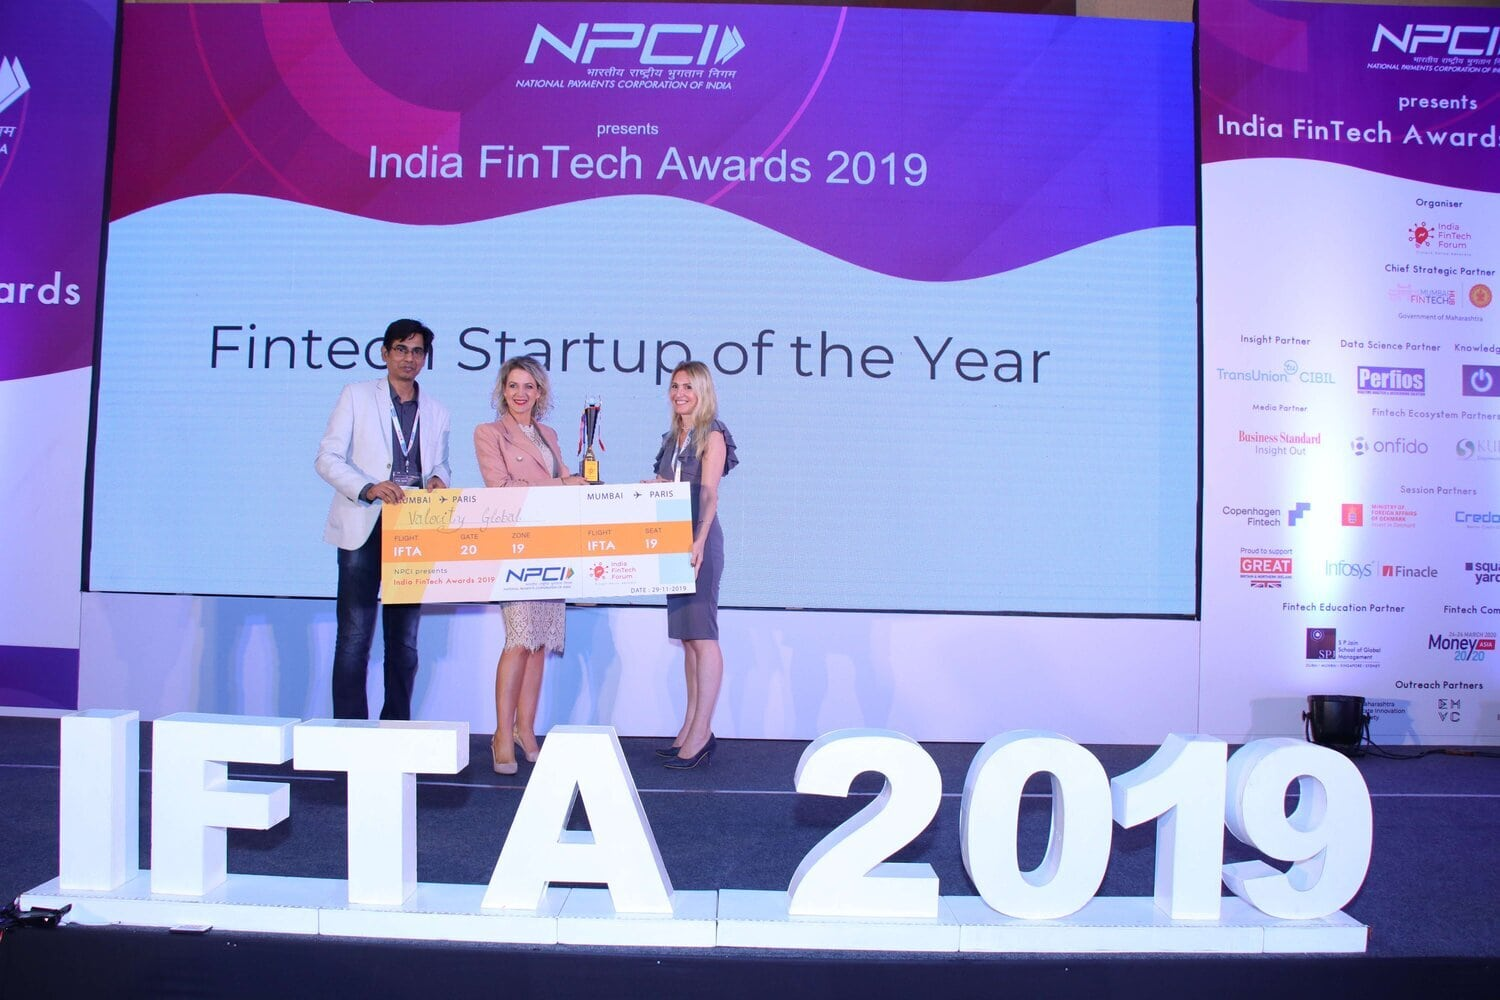 Valocity Founder and Global CEO, Carmen Vicelich receives the trophy for Fintech of the Year 2019.